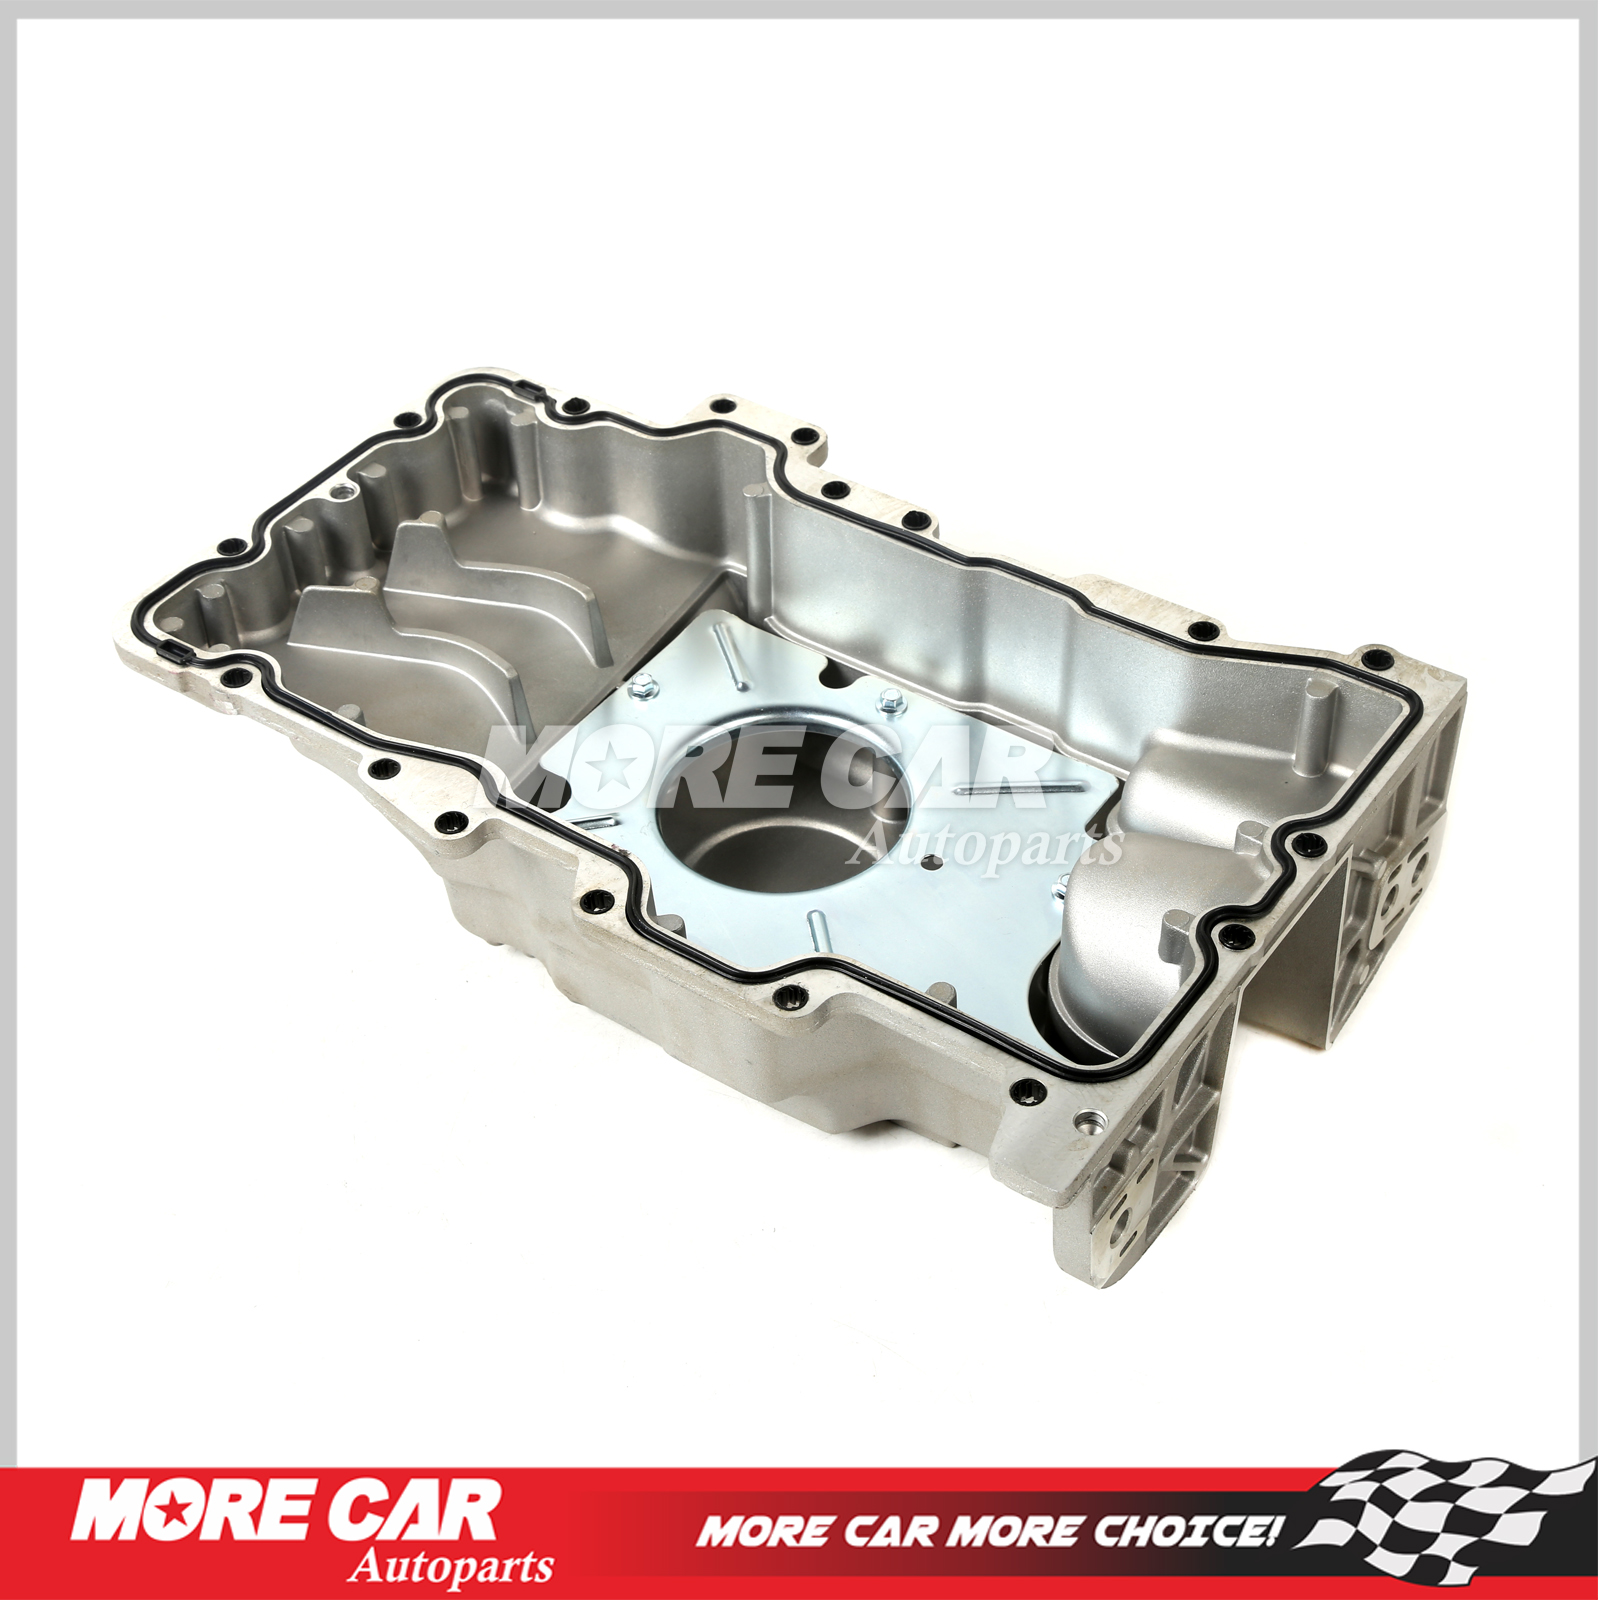 hight resolution of details about oil pan fits for 95 08 ford escape tribute mariner mystique tribute 7l8z6675a